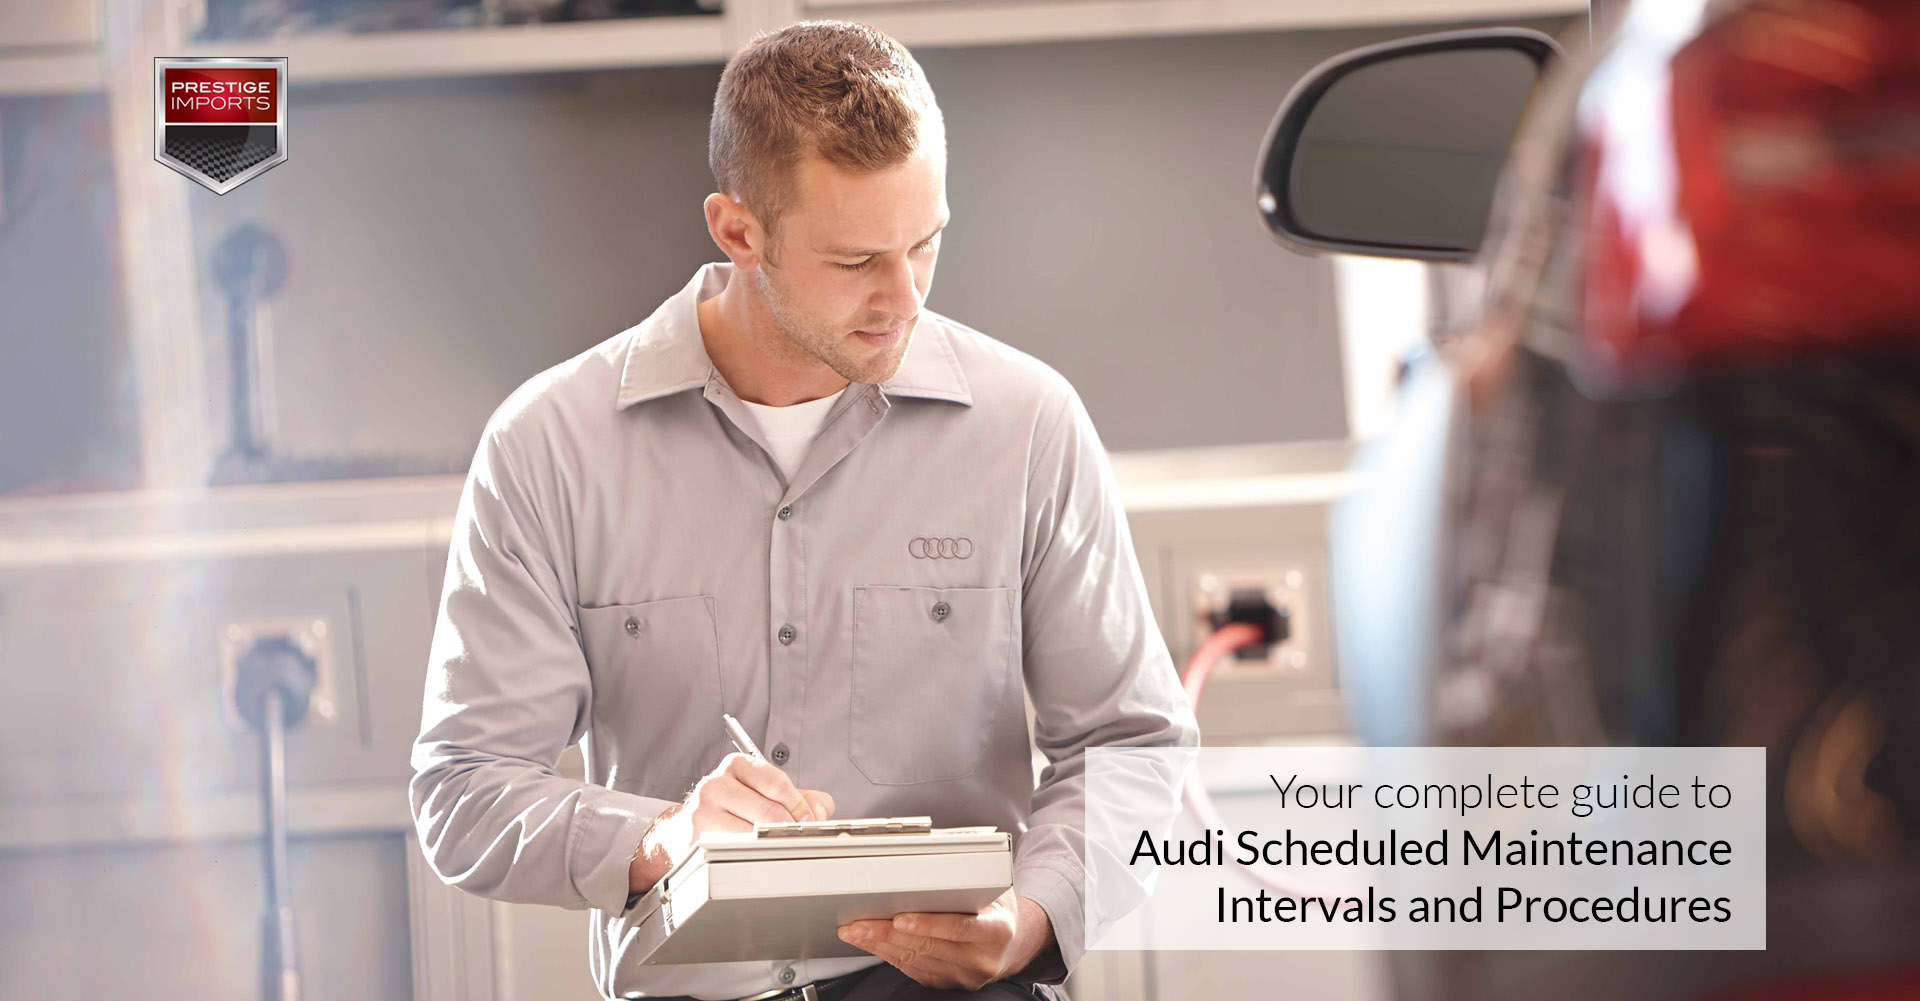 Audi Scheduled Maintenance Intervals And Procedures For Denver Drivers 2000 Grand Am Fuel Filter Replacement Your Guide To